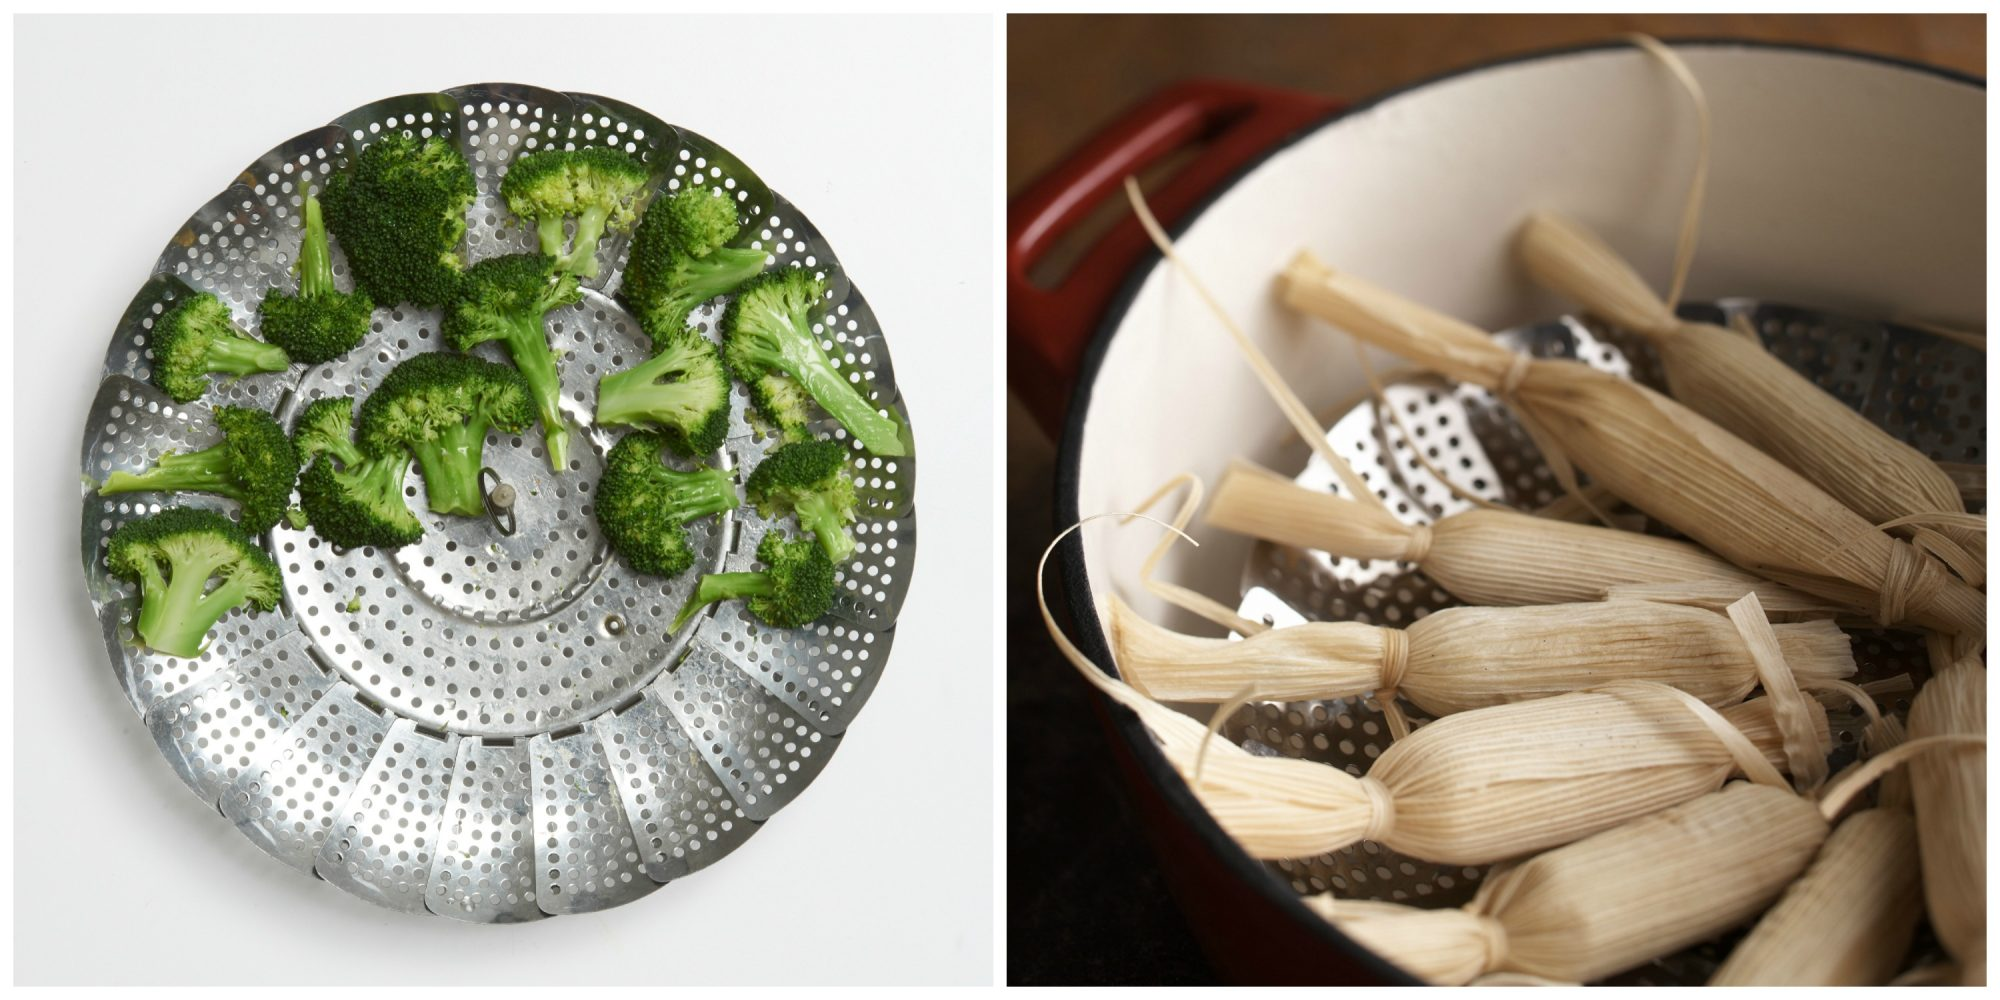 Collapsible Stainless Steel Steamer Collage